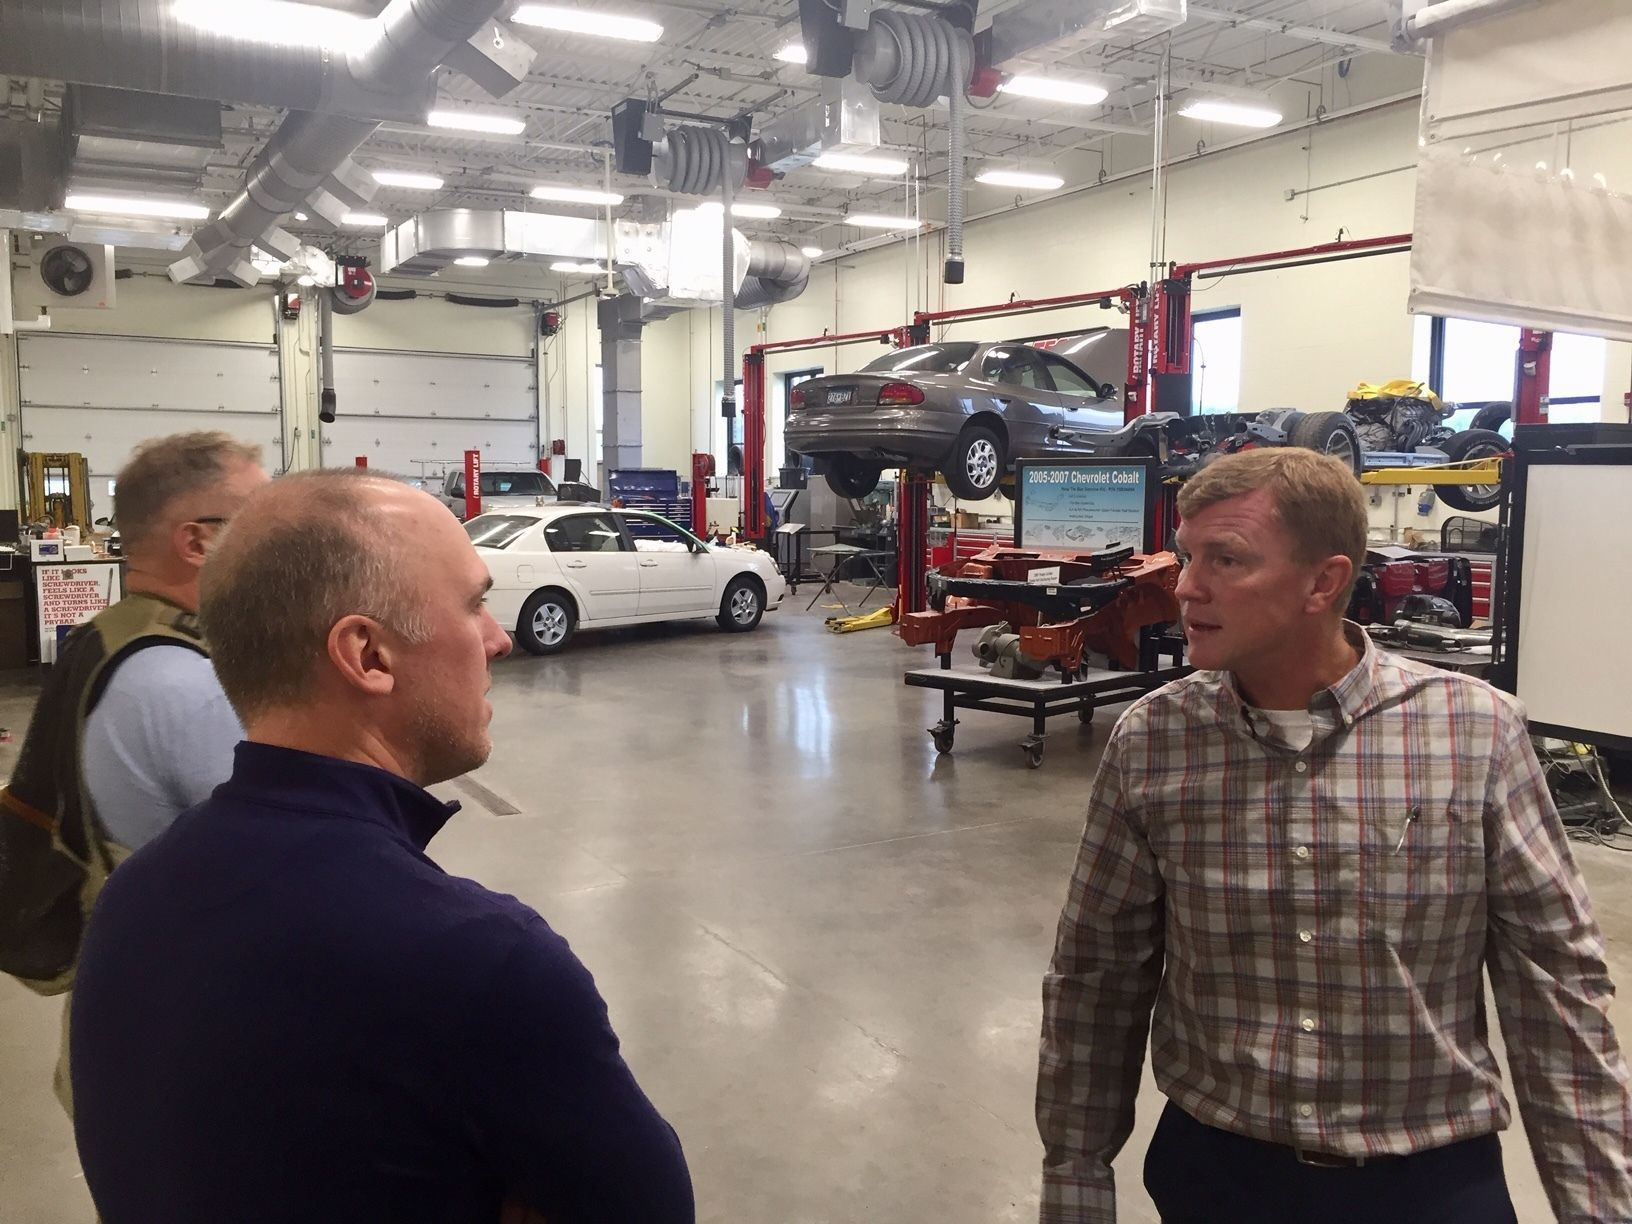 Local Alumnus Josh Slayton Gives back to the Wausau School District, Supports Career and Technical Education